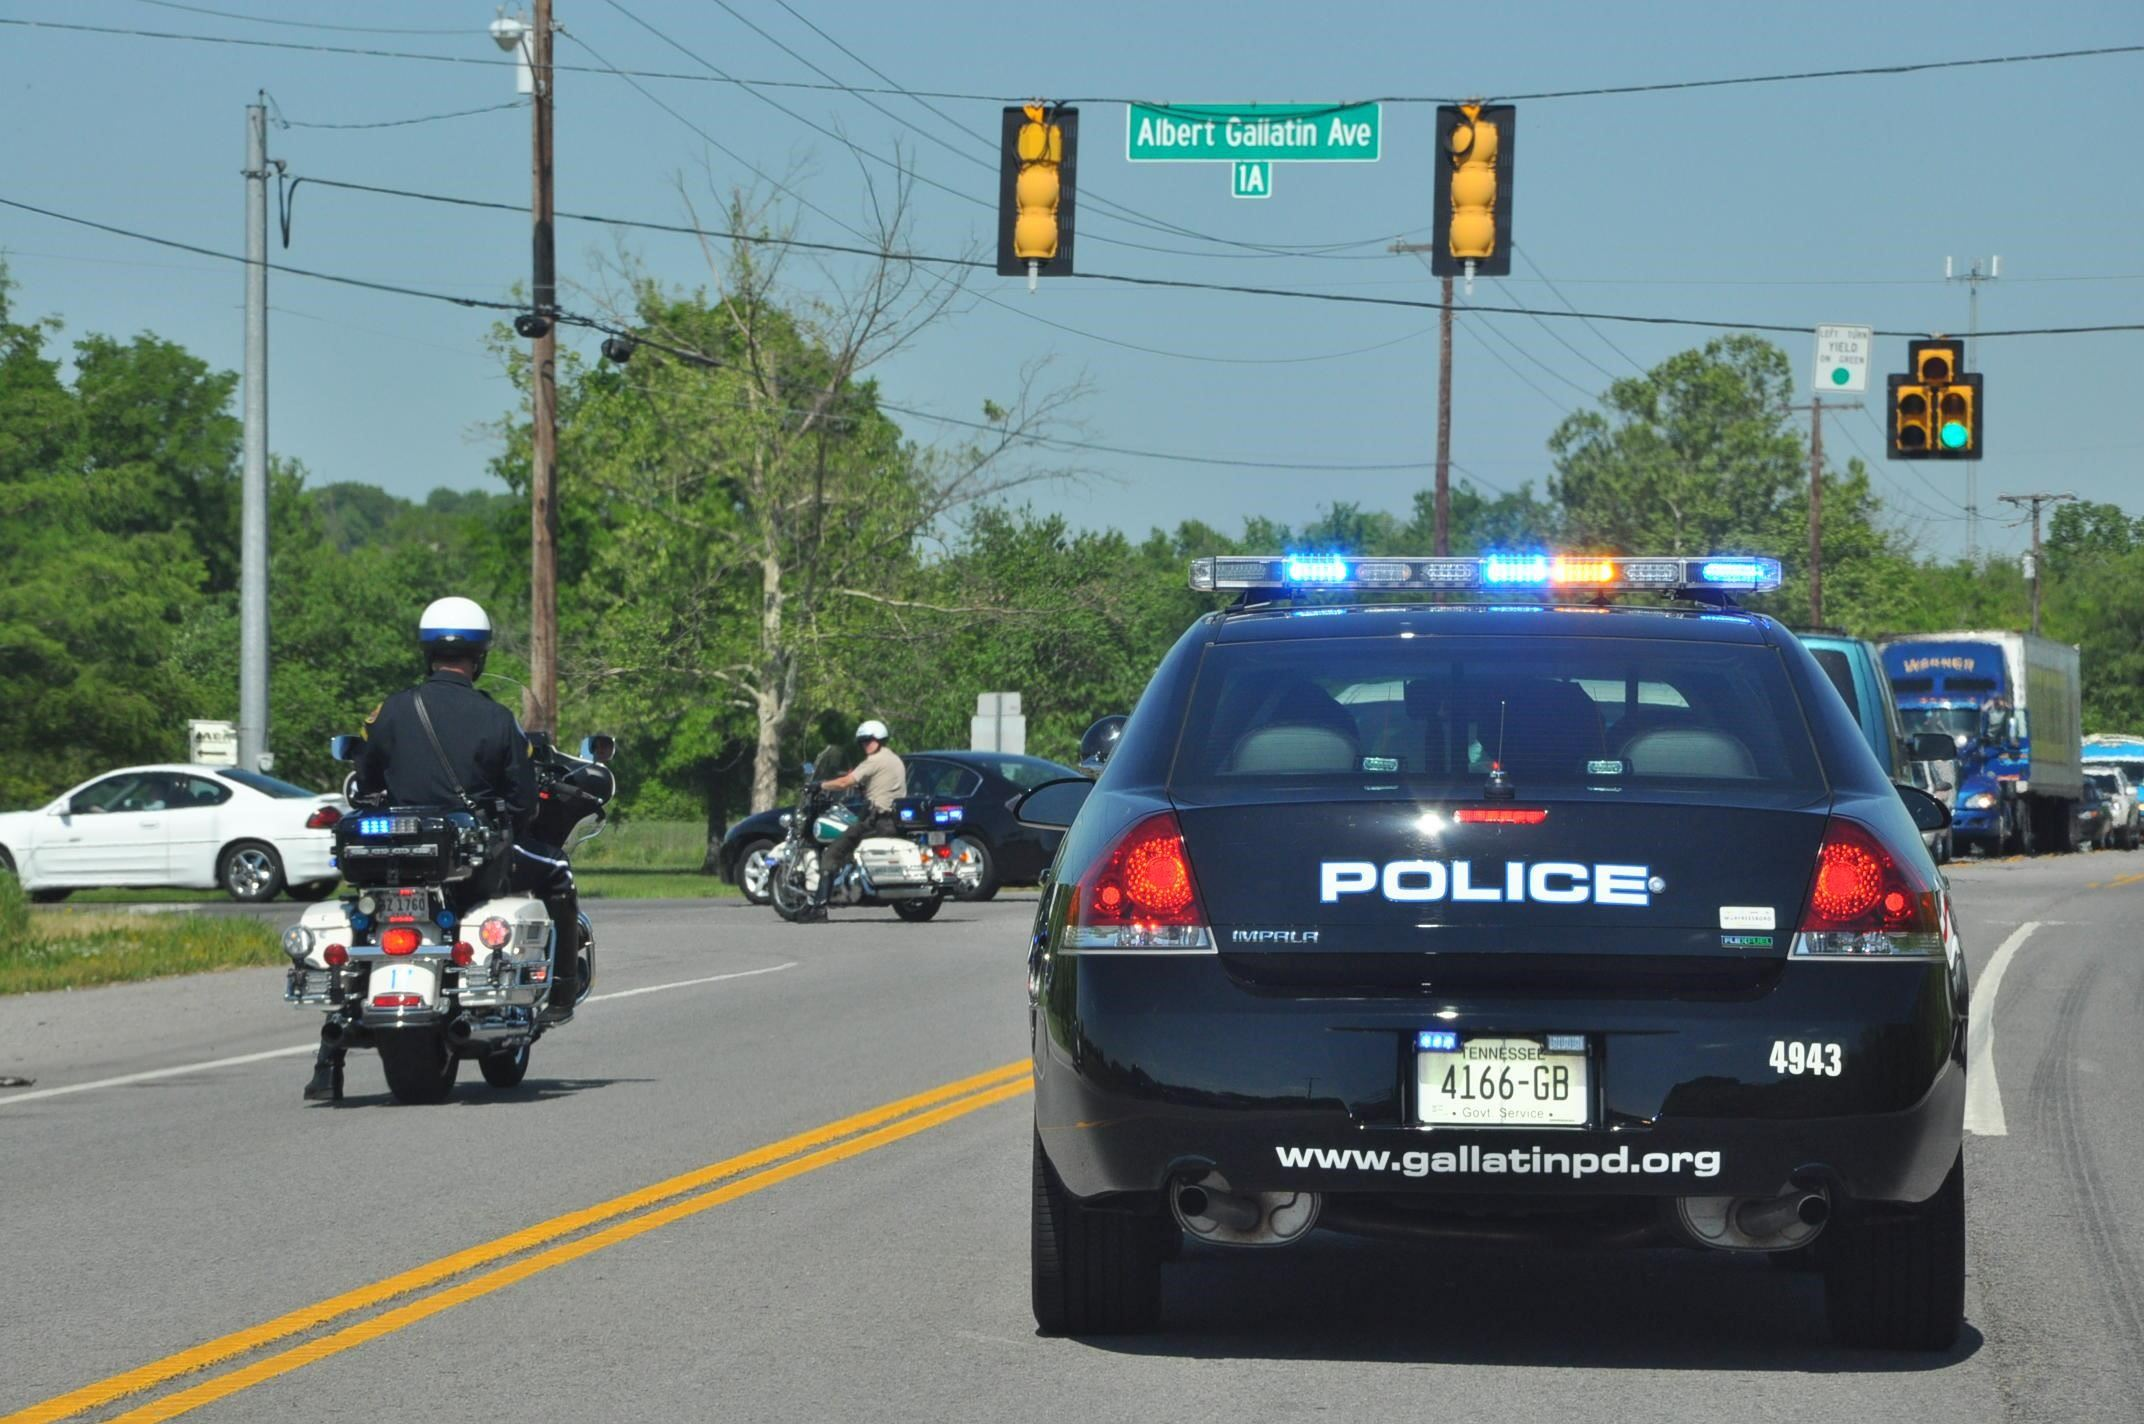 Police cruisers and motorcycles in traffic.